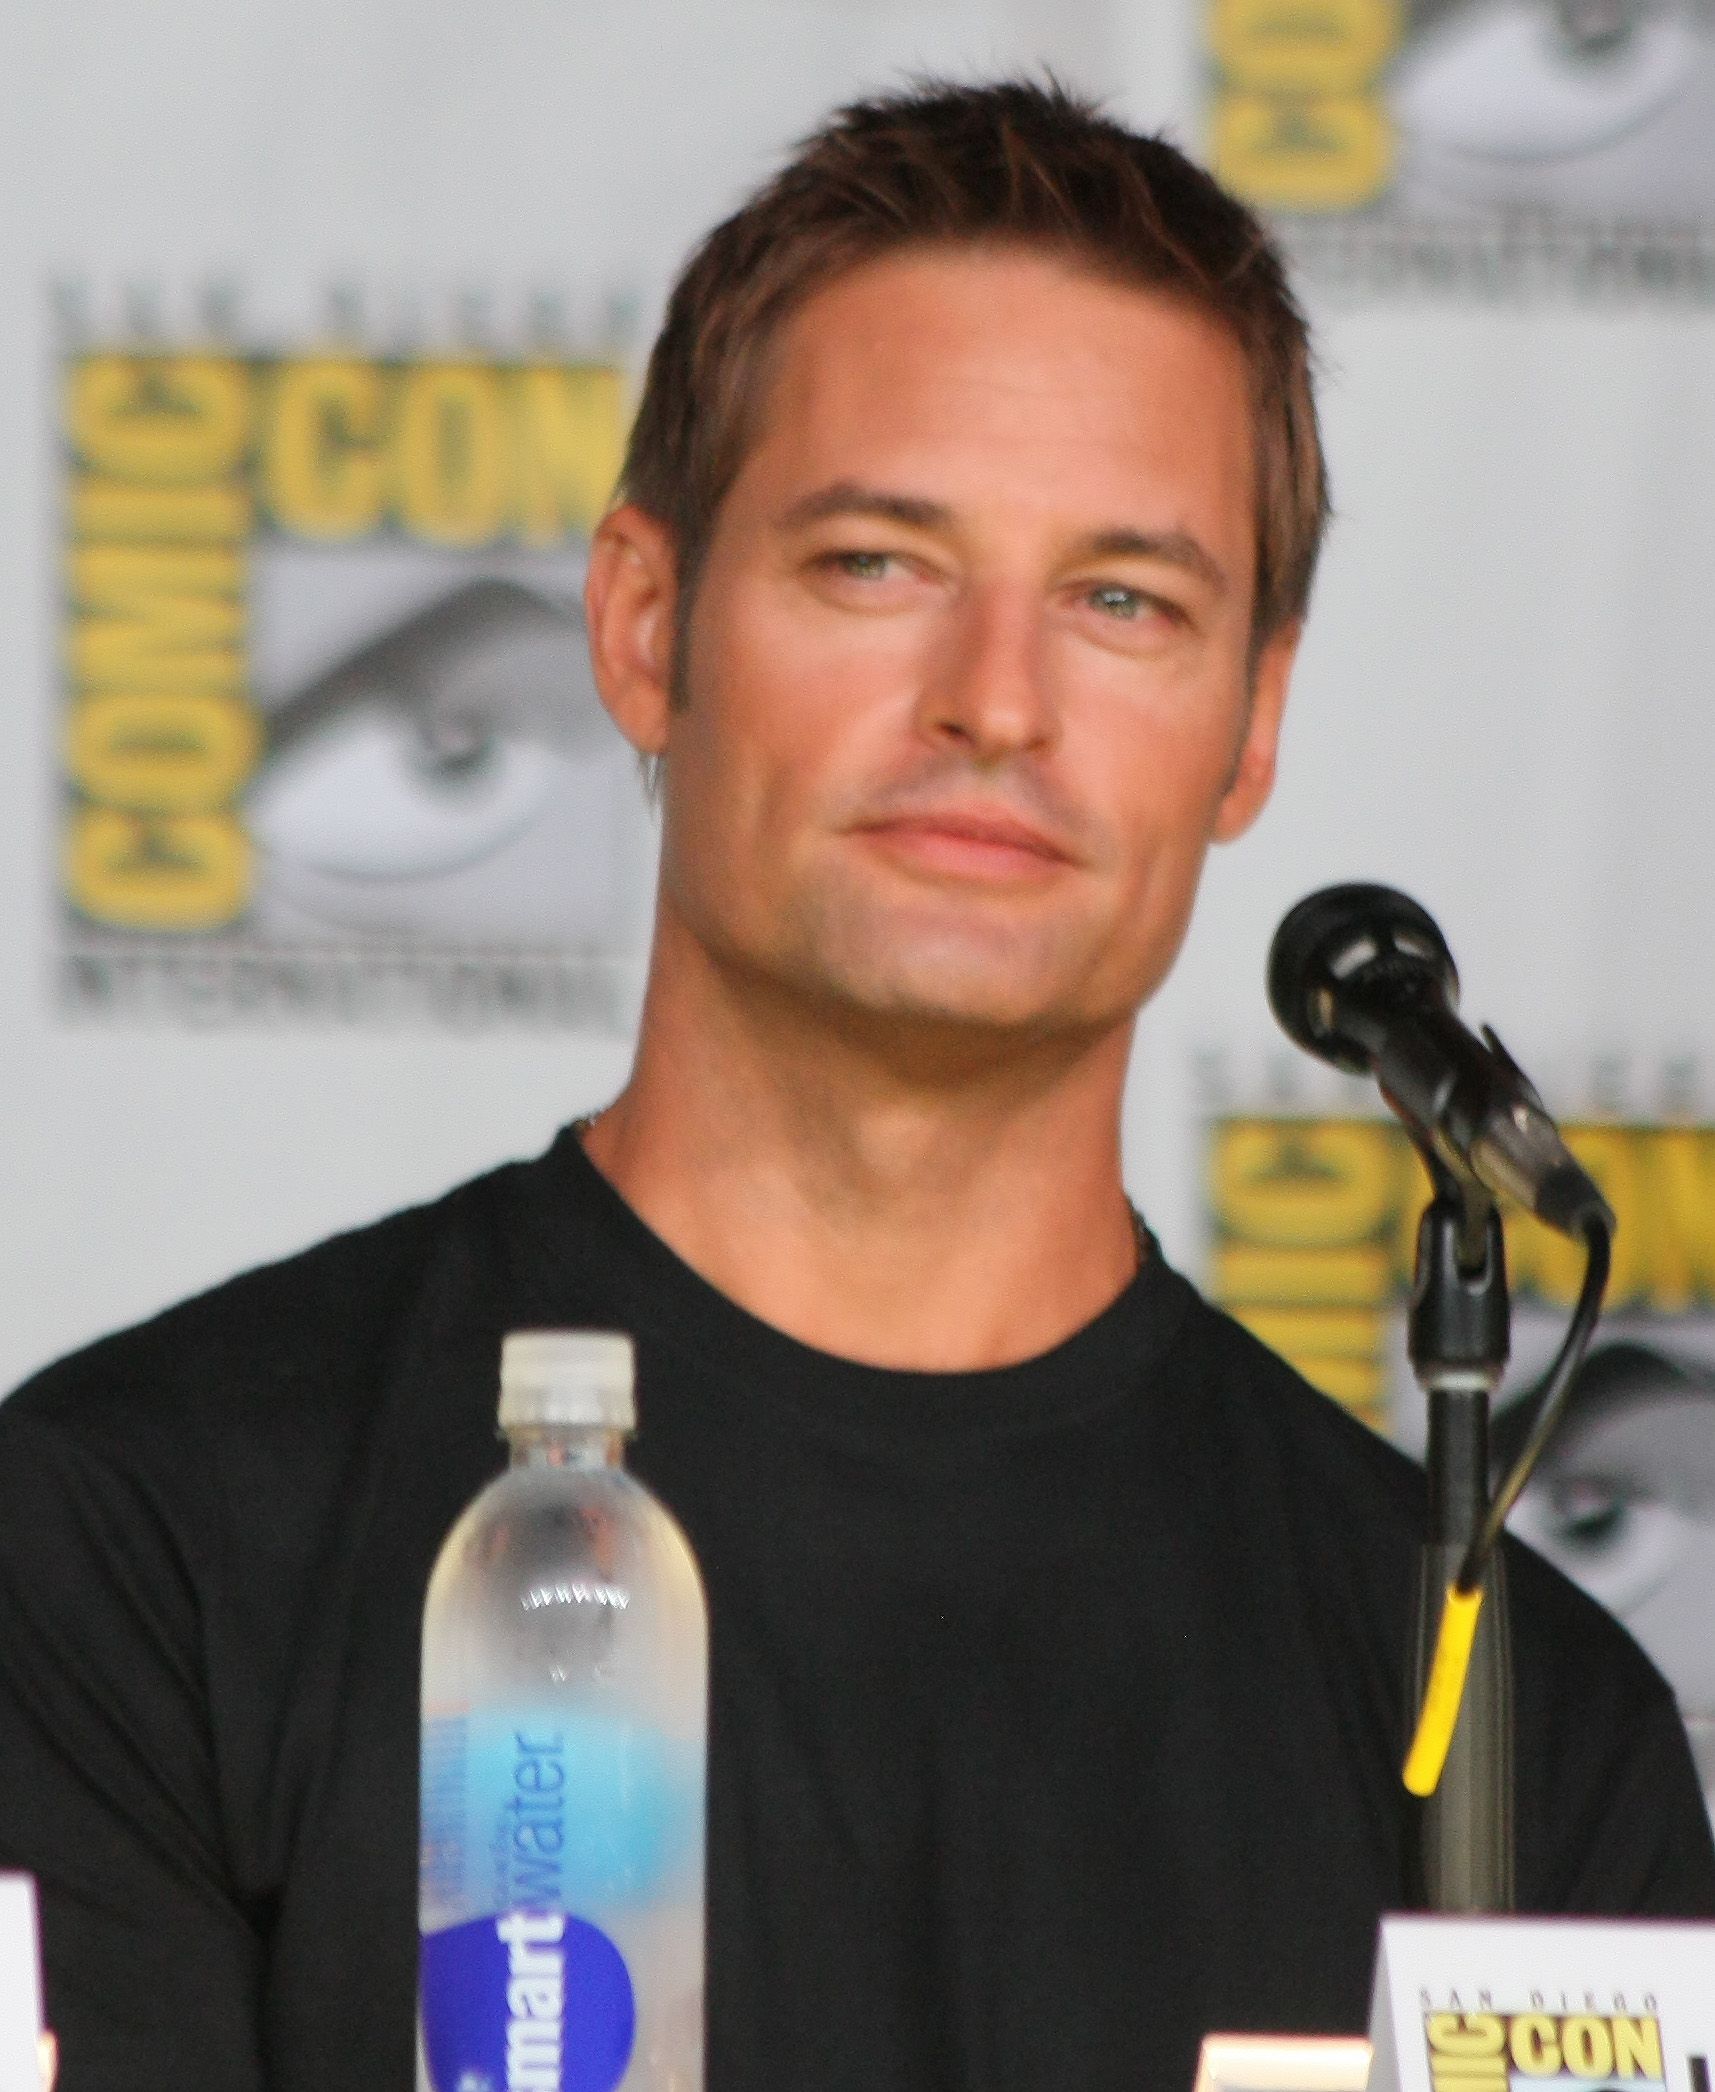 Josh Holloway - Wikipedia, the free encyclopedia